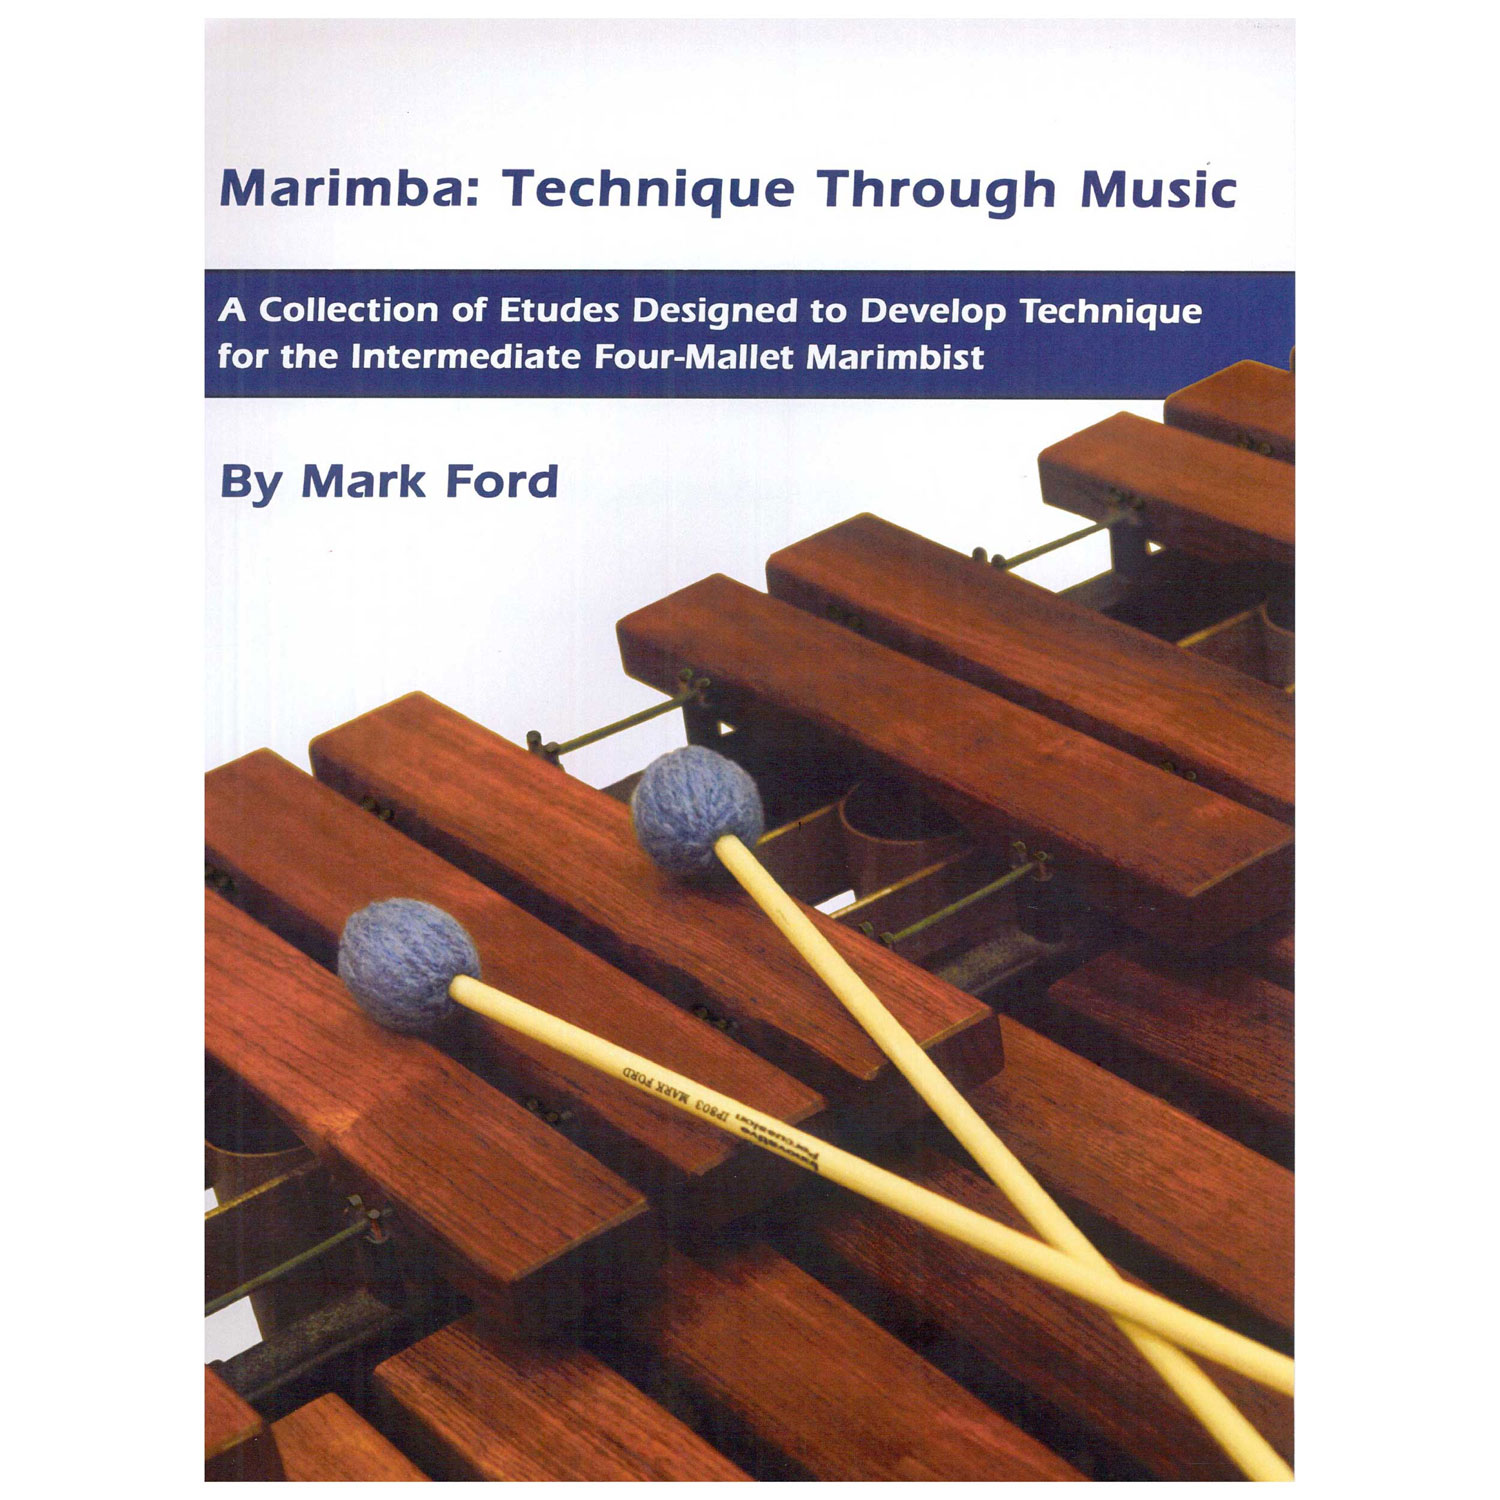 Marimba: Technique Through Music by Mark Ford